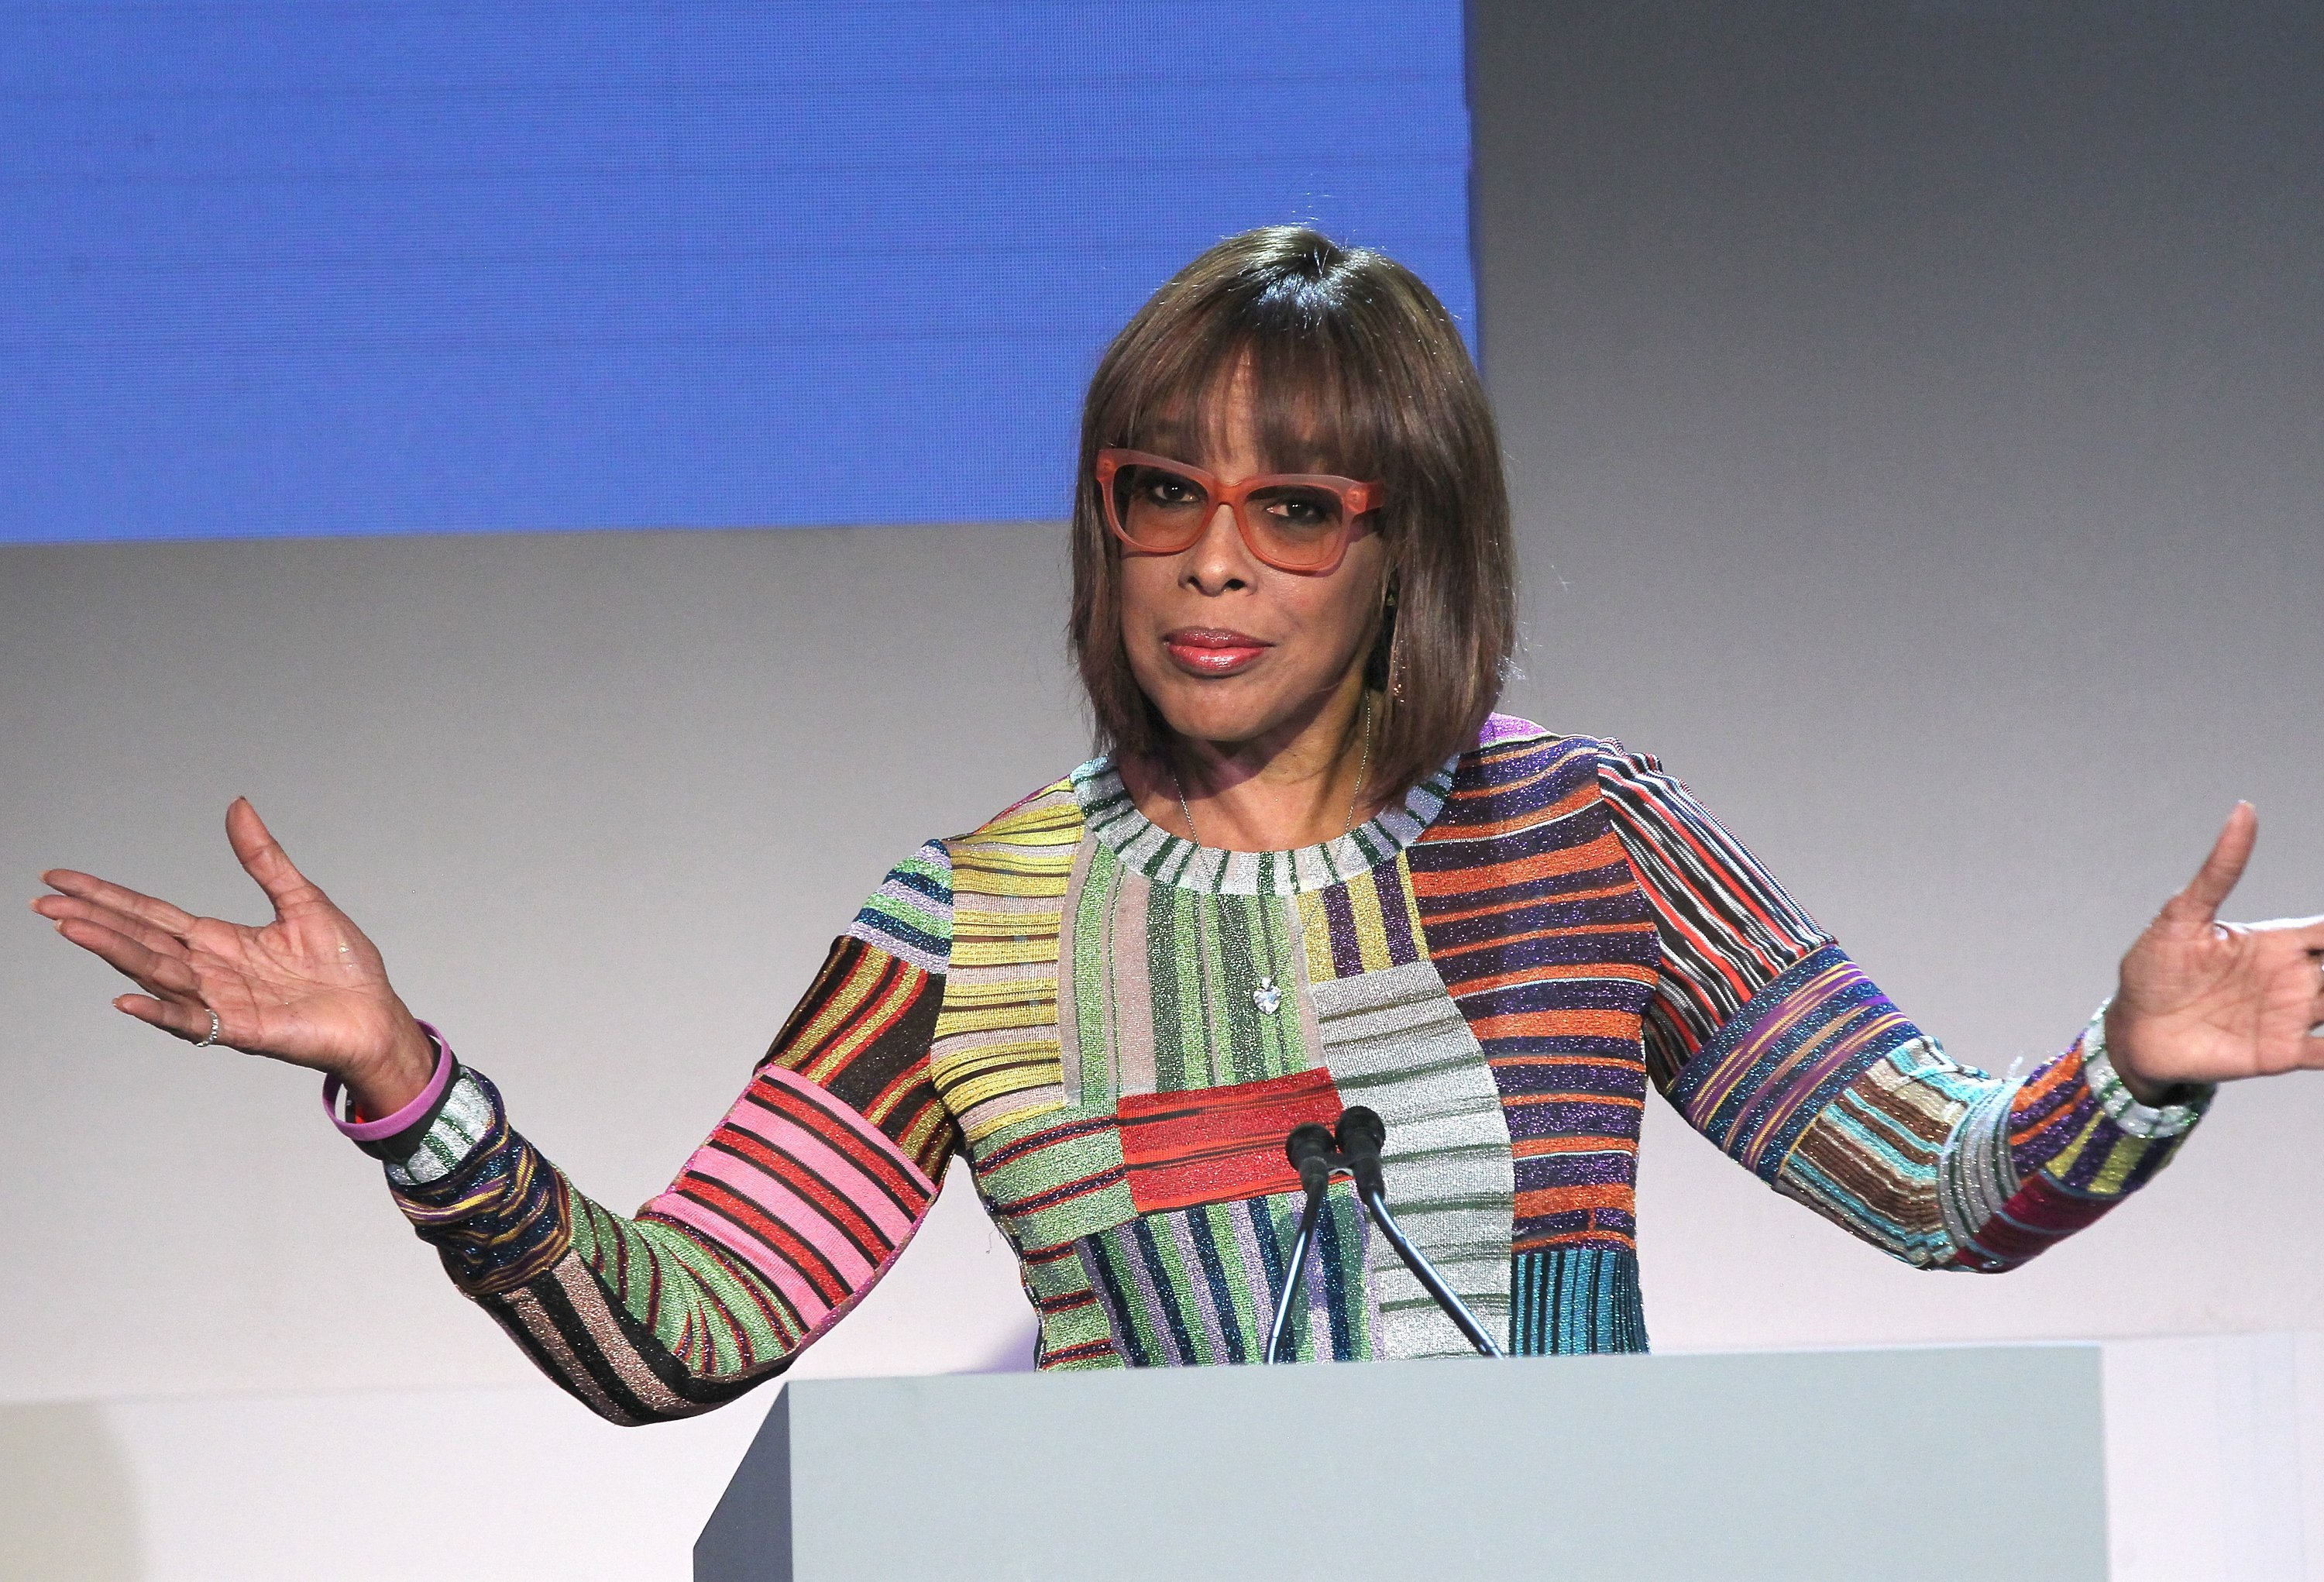 Gayle King speaks onstage at the WSJ. Magazine 2018 Innovator Awards. November 7, 2018 | Photo: GettyImages